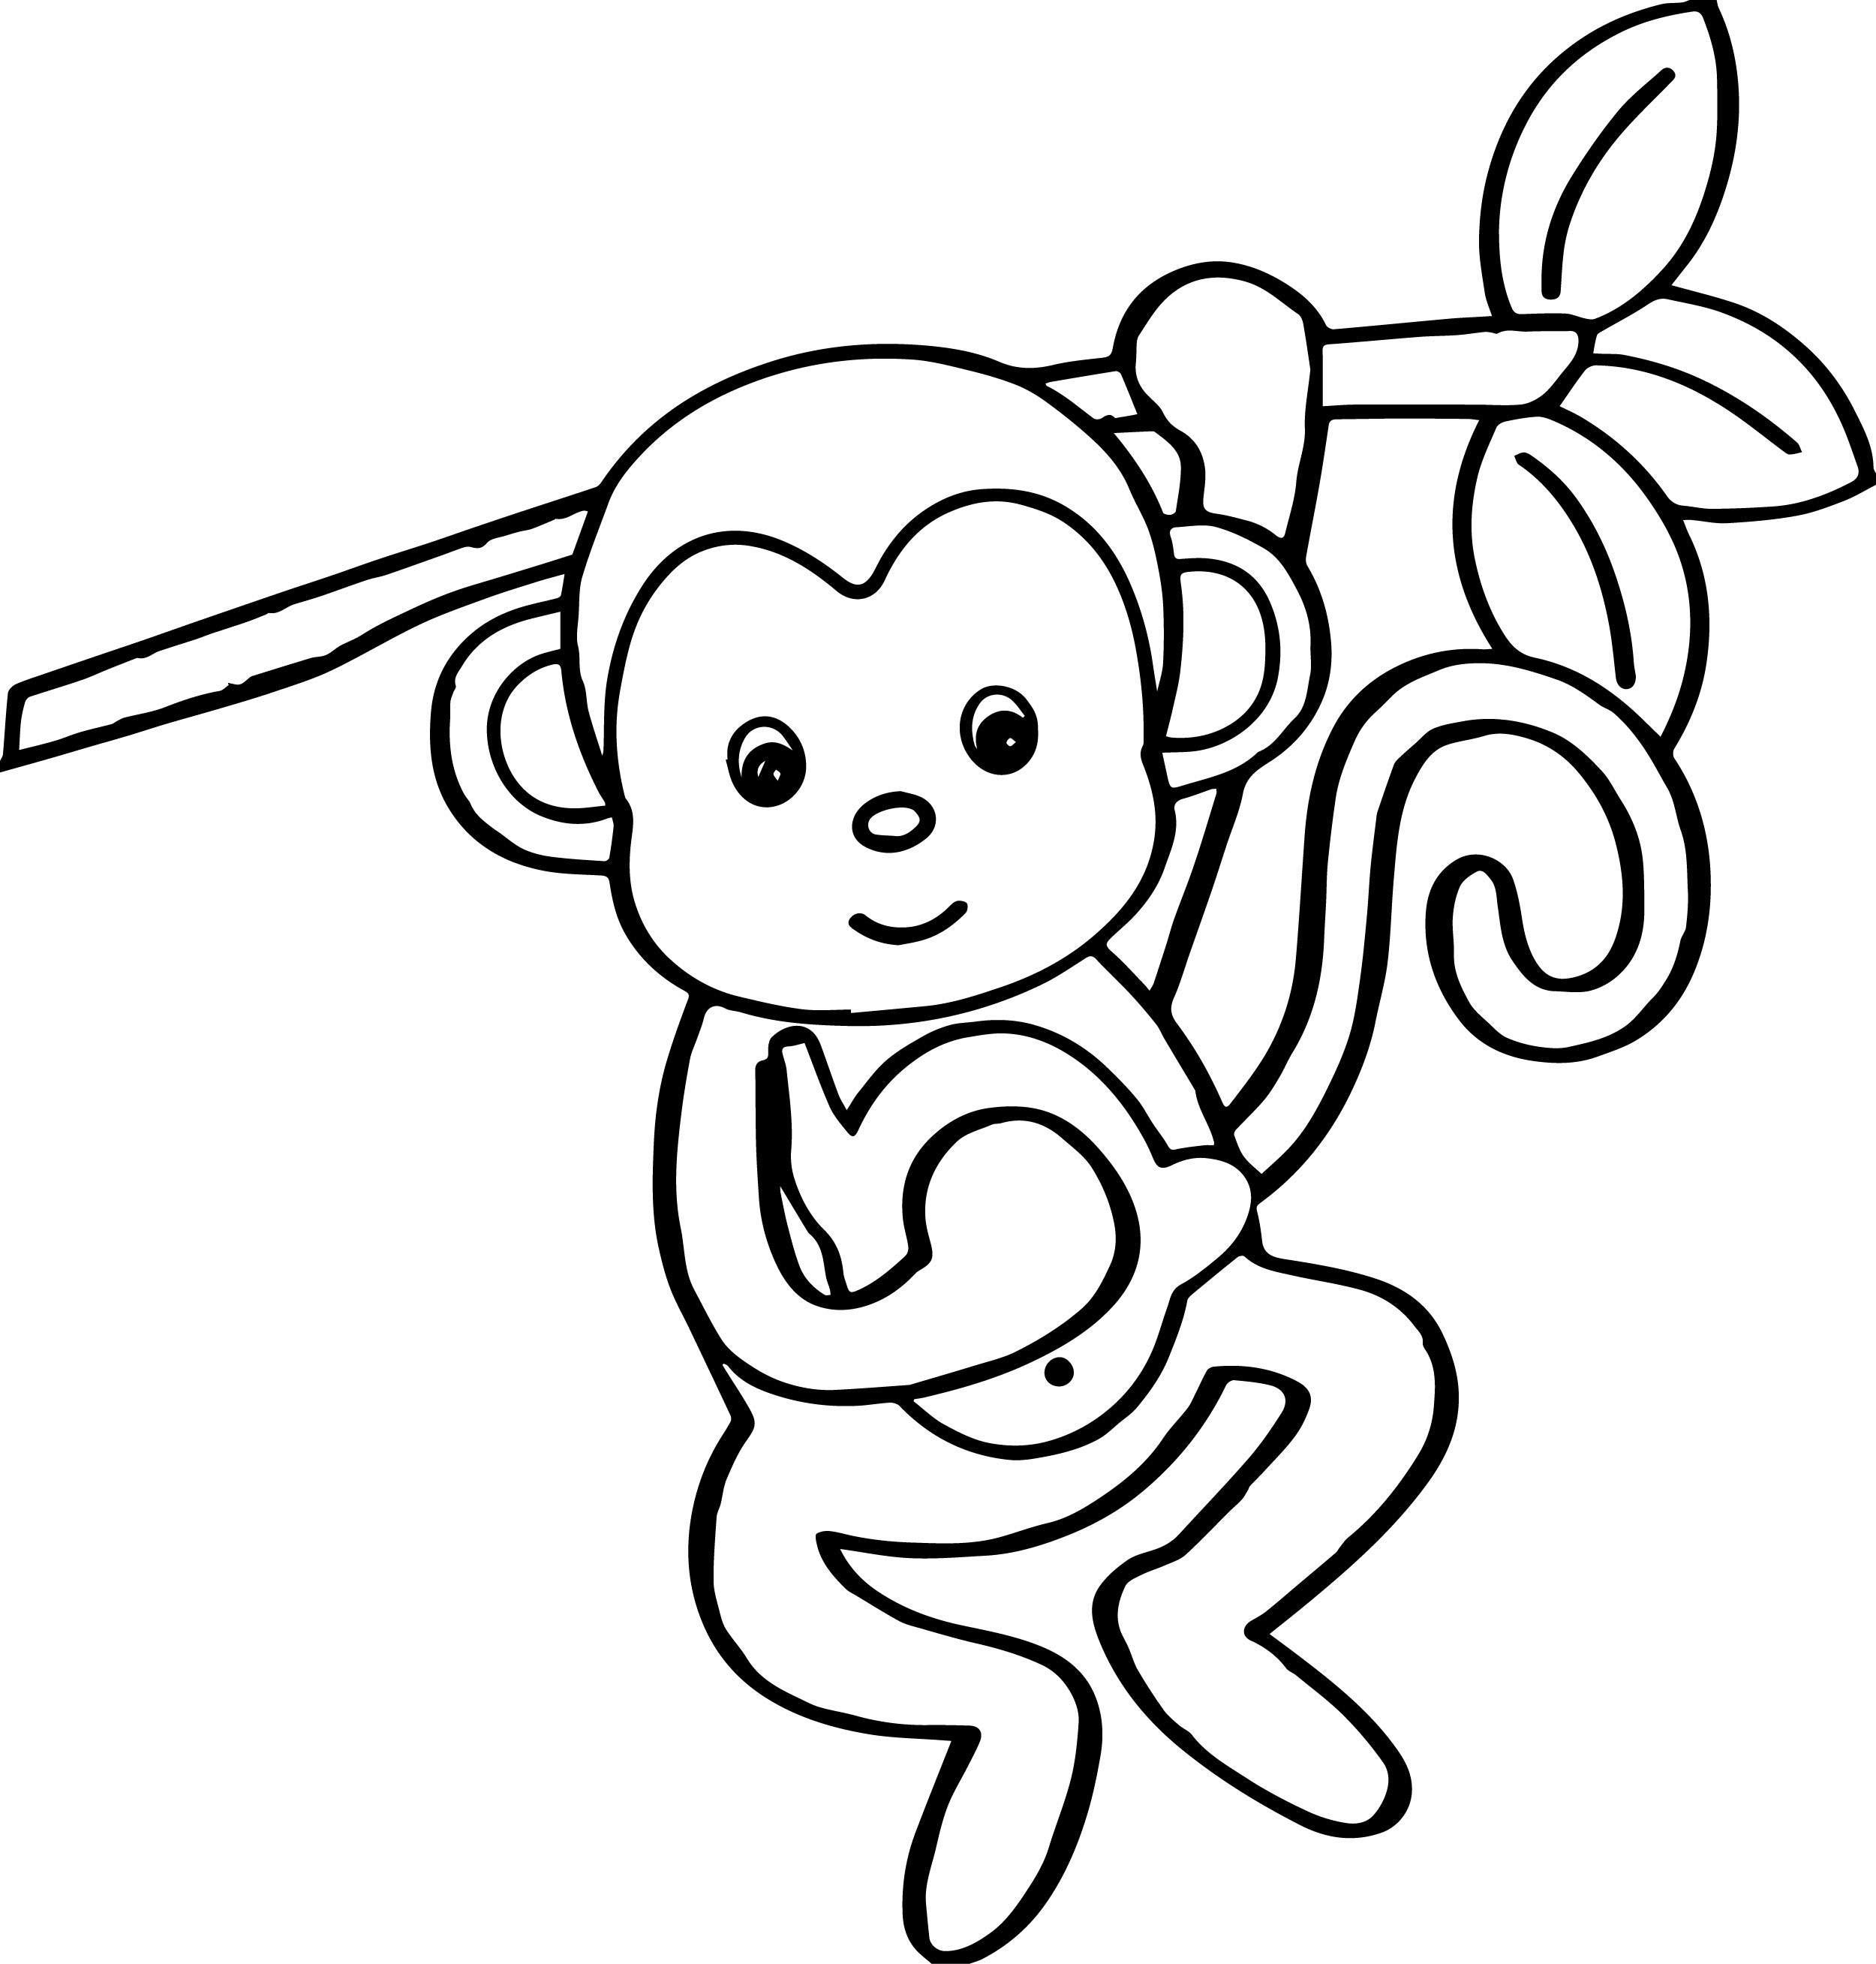 2500x2617 Coloring Pages For Monkey New Baby Monkey Coloring Page Monkey